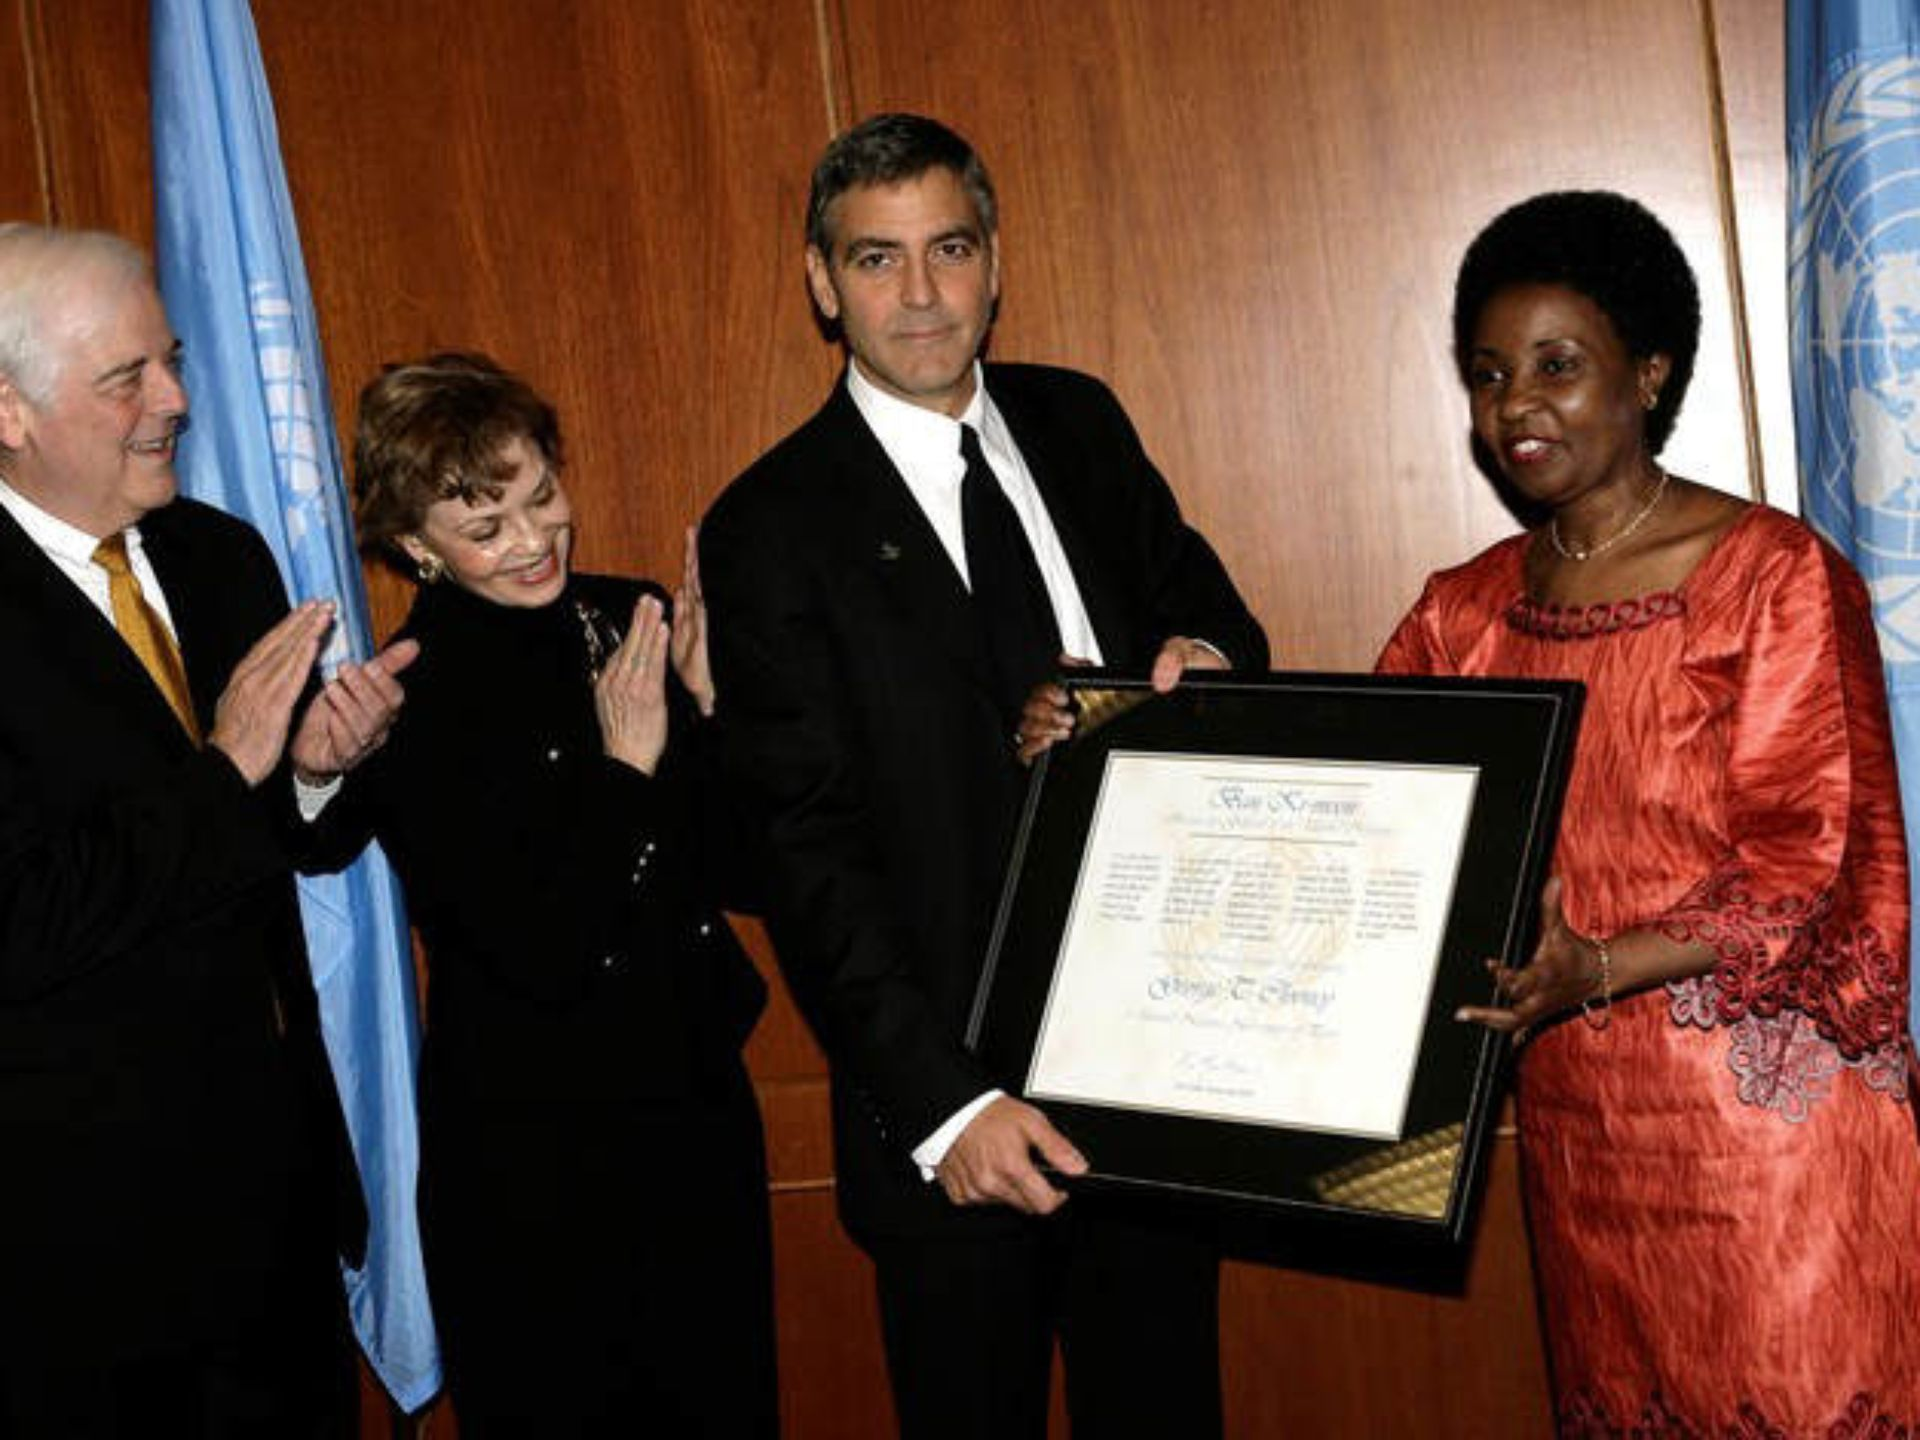 Deputy Secretary-General Dr. Asha-Rose Migiro, right, presents actor George Clooney, second from right, with a certificate to honor his new role as a United Nations Messenger of Peace at U.N. headquarters. Clooney's mother, Nina Clooney, and father, Nick Clooney, left, look on.